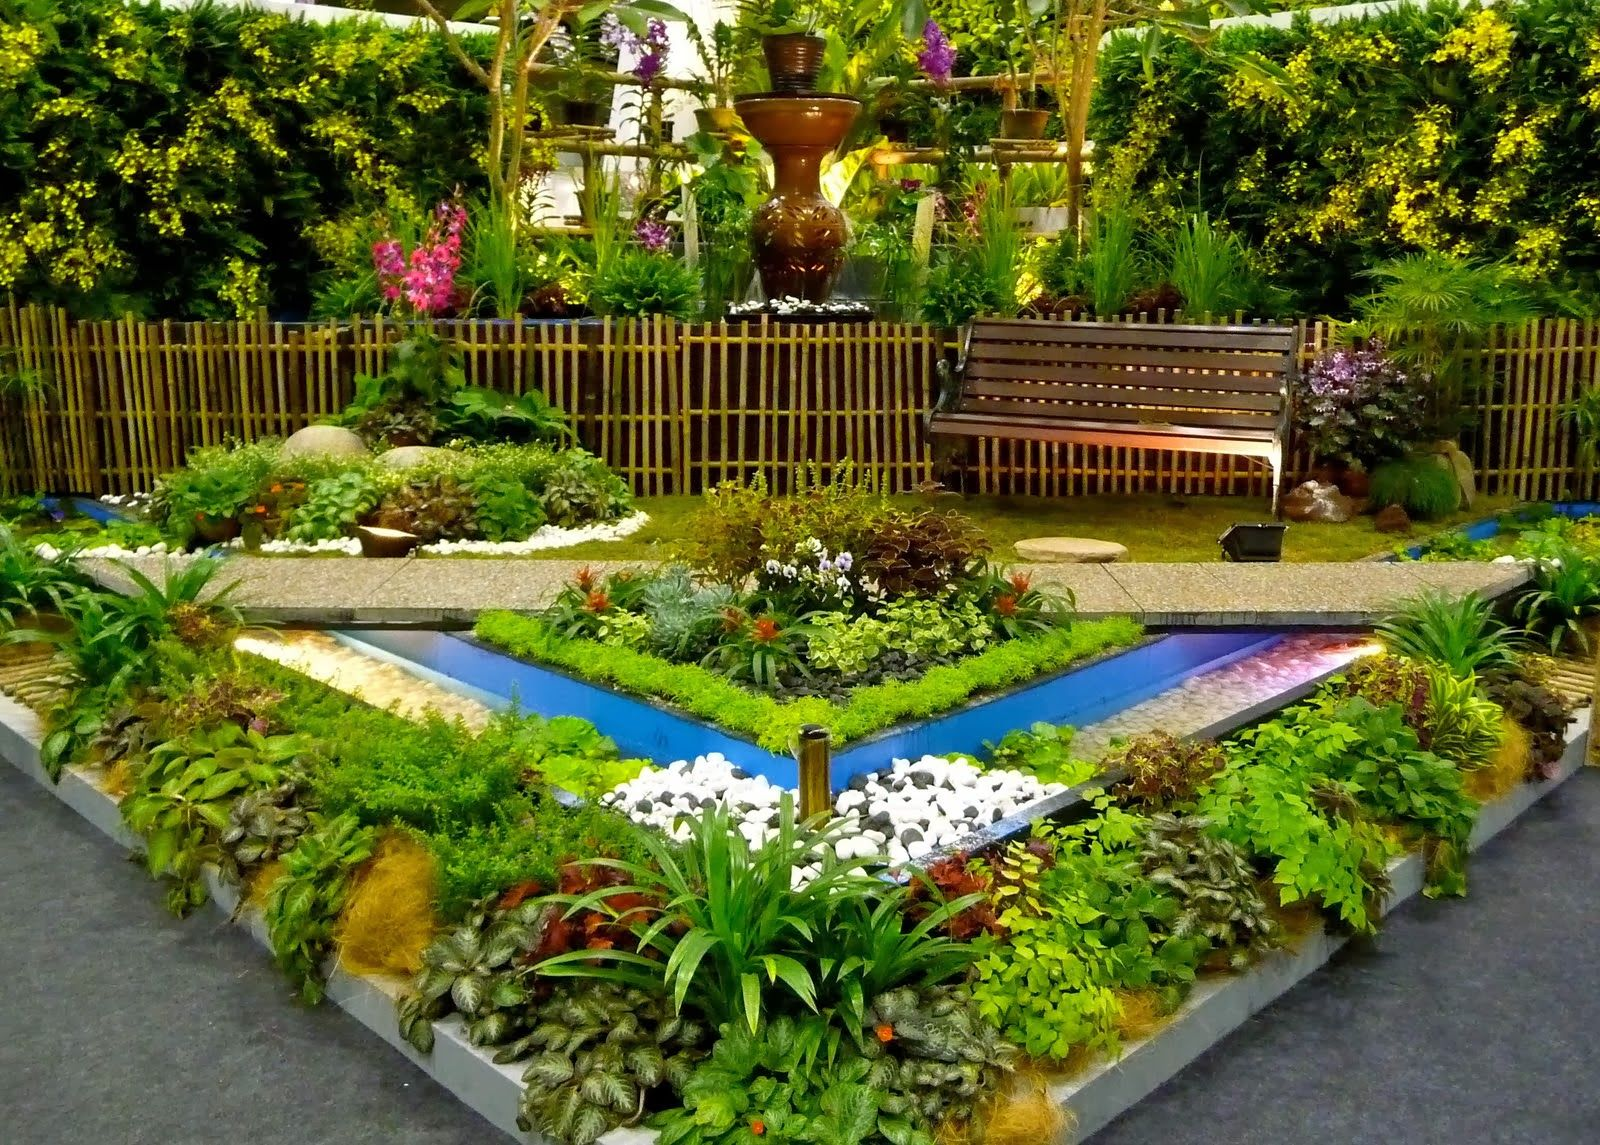 Best landscaping ideas i have ever seen wow design for Flower garden landscape